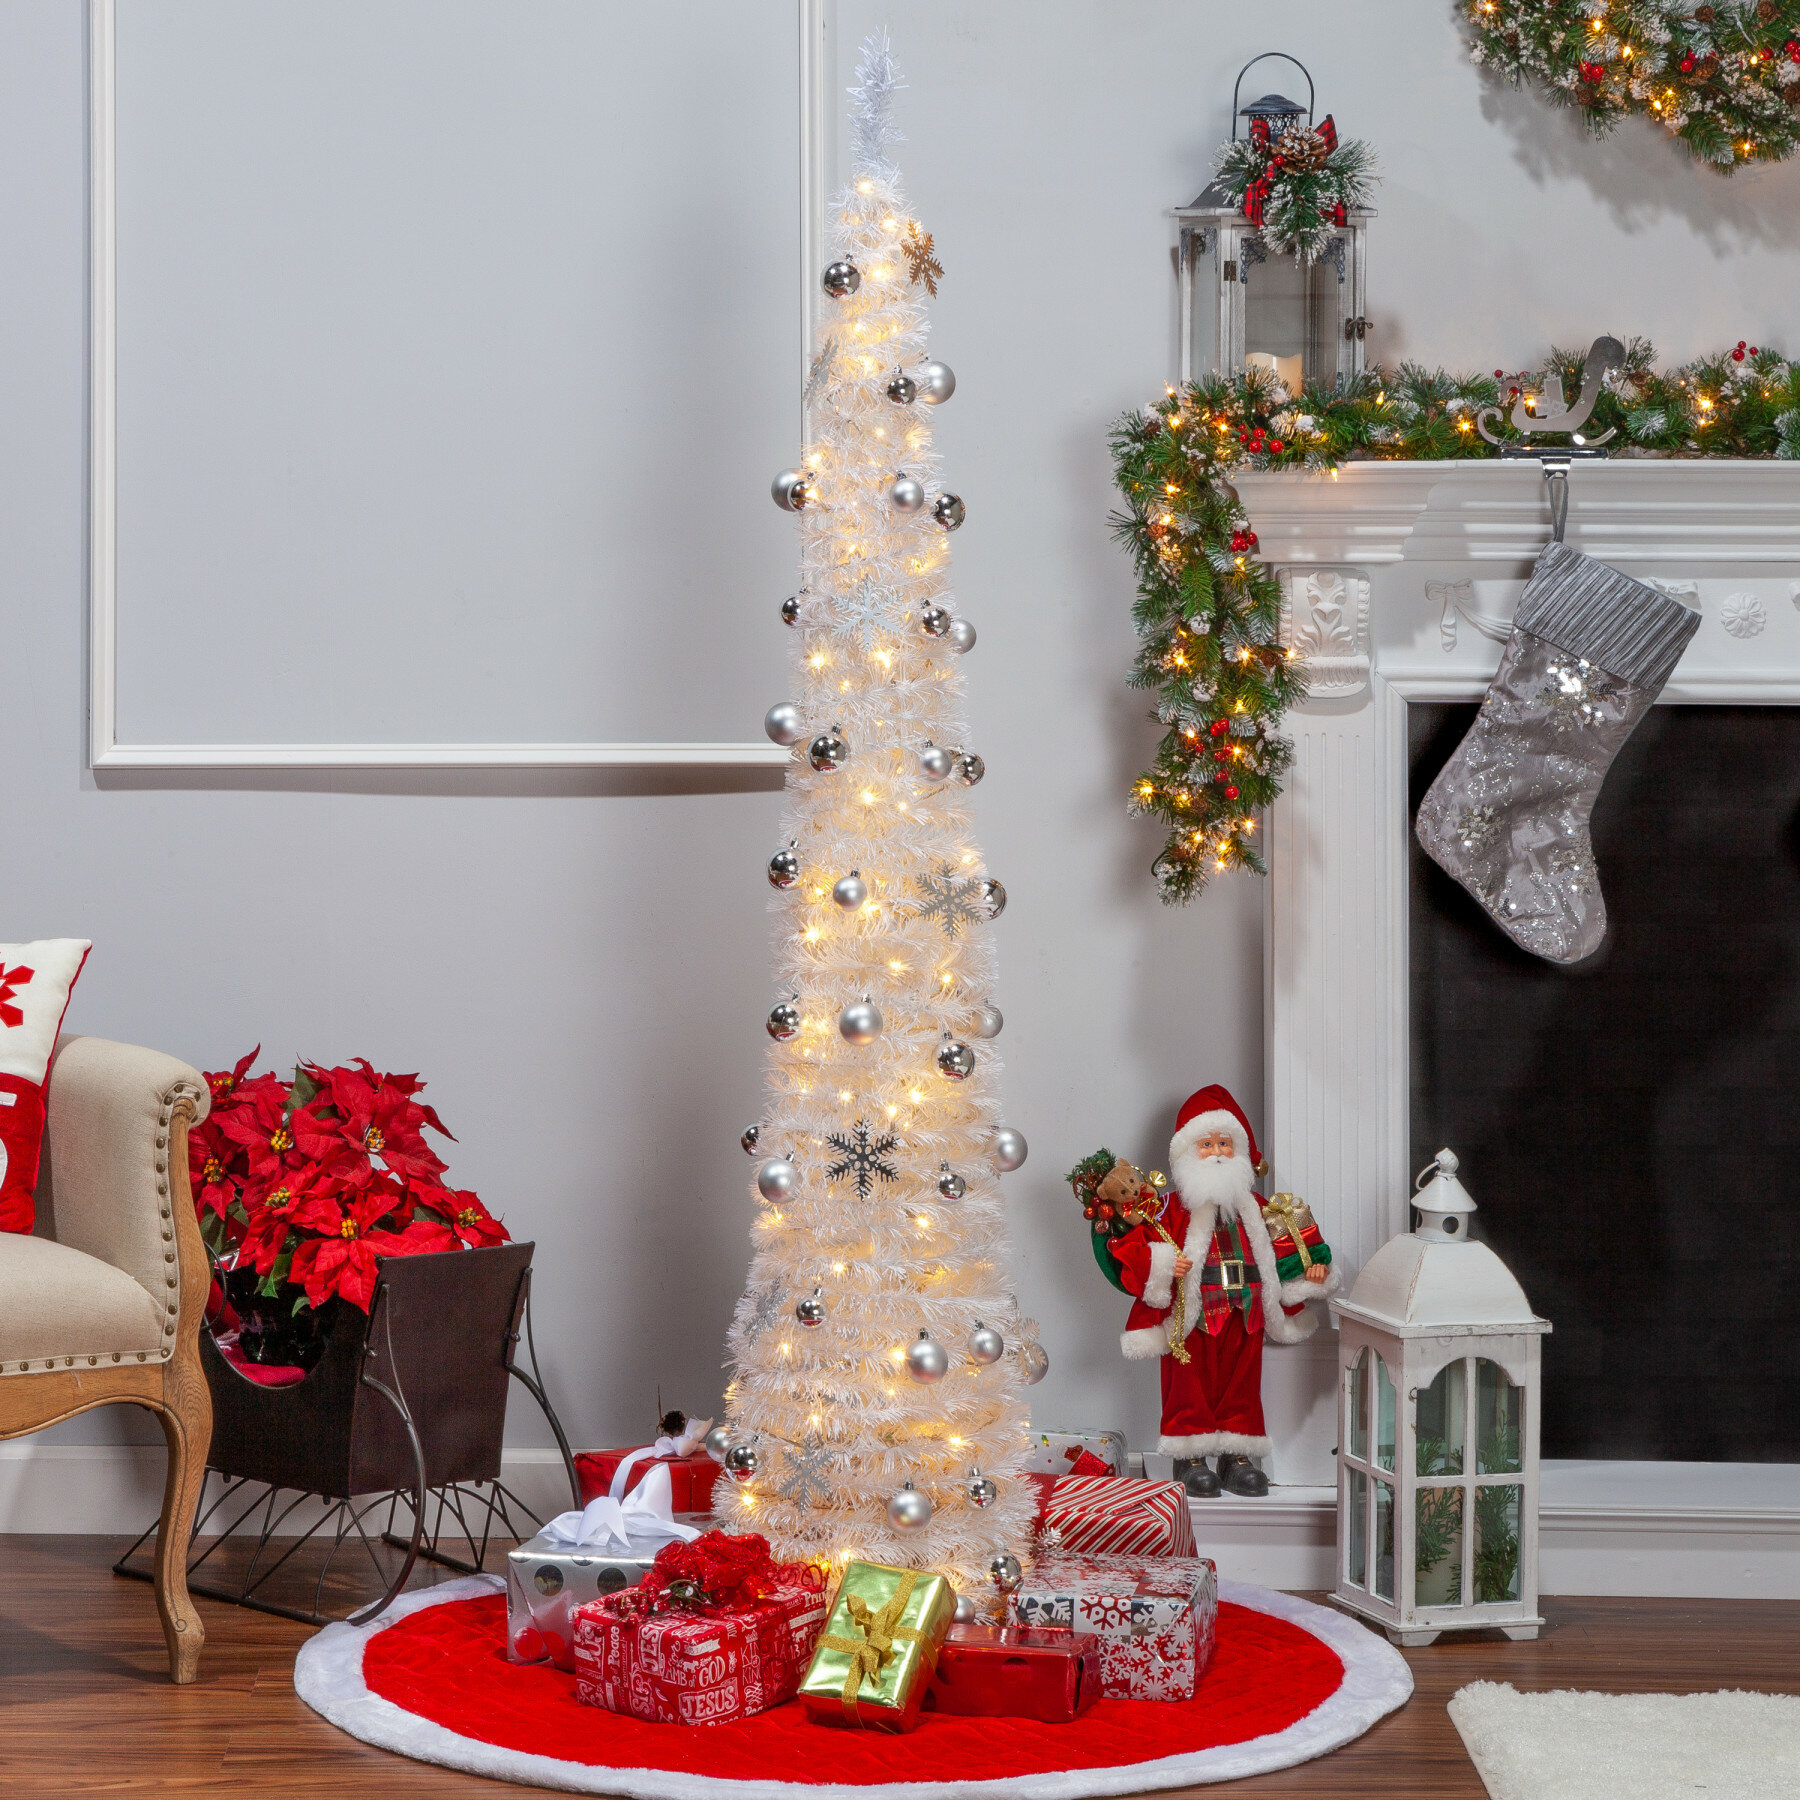 Pop Up Christmas Tree.Pop Up Decorated 4 White Artificial Christmas Tree With 100 Clear White Lights